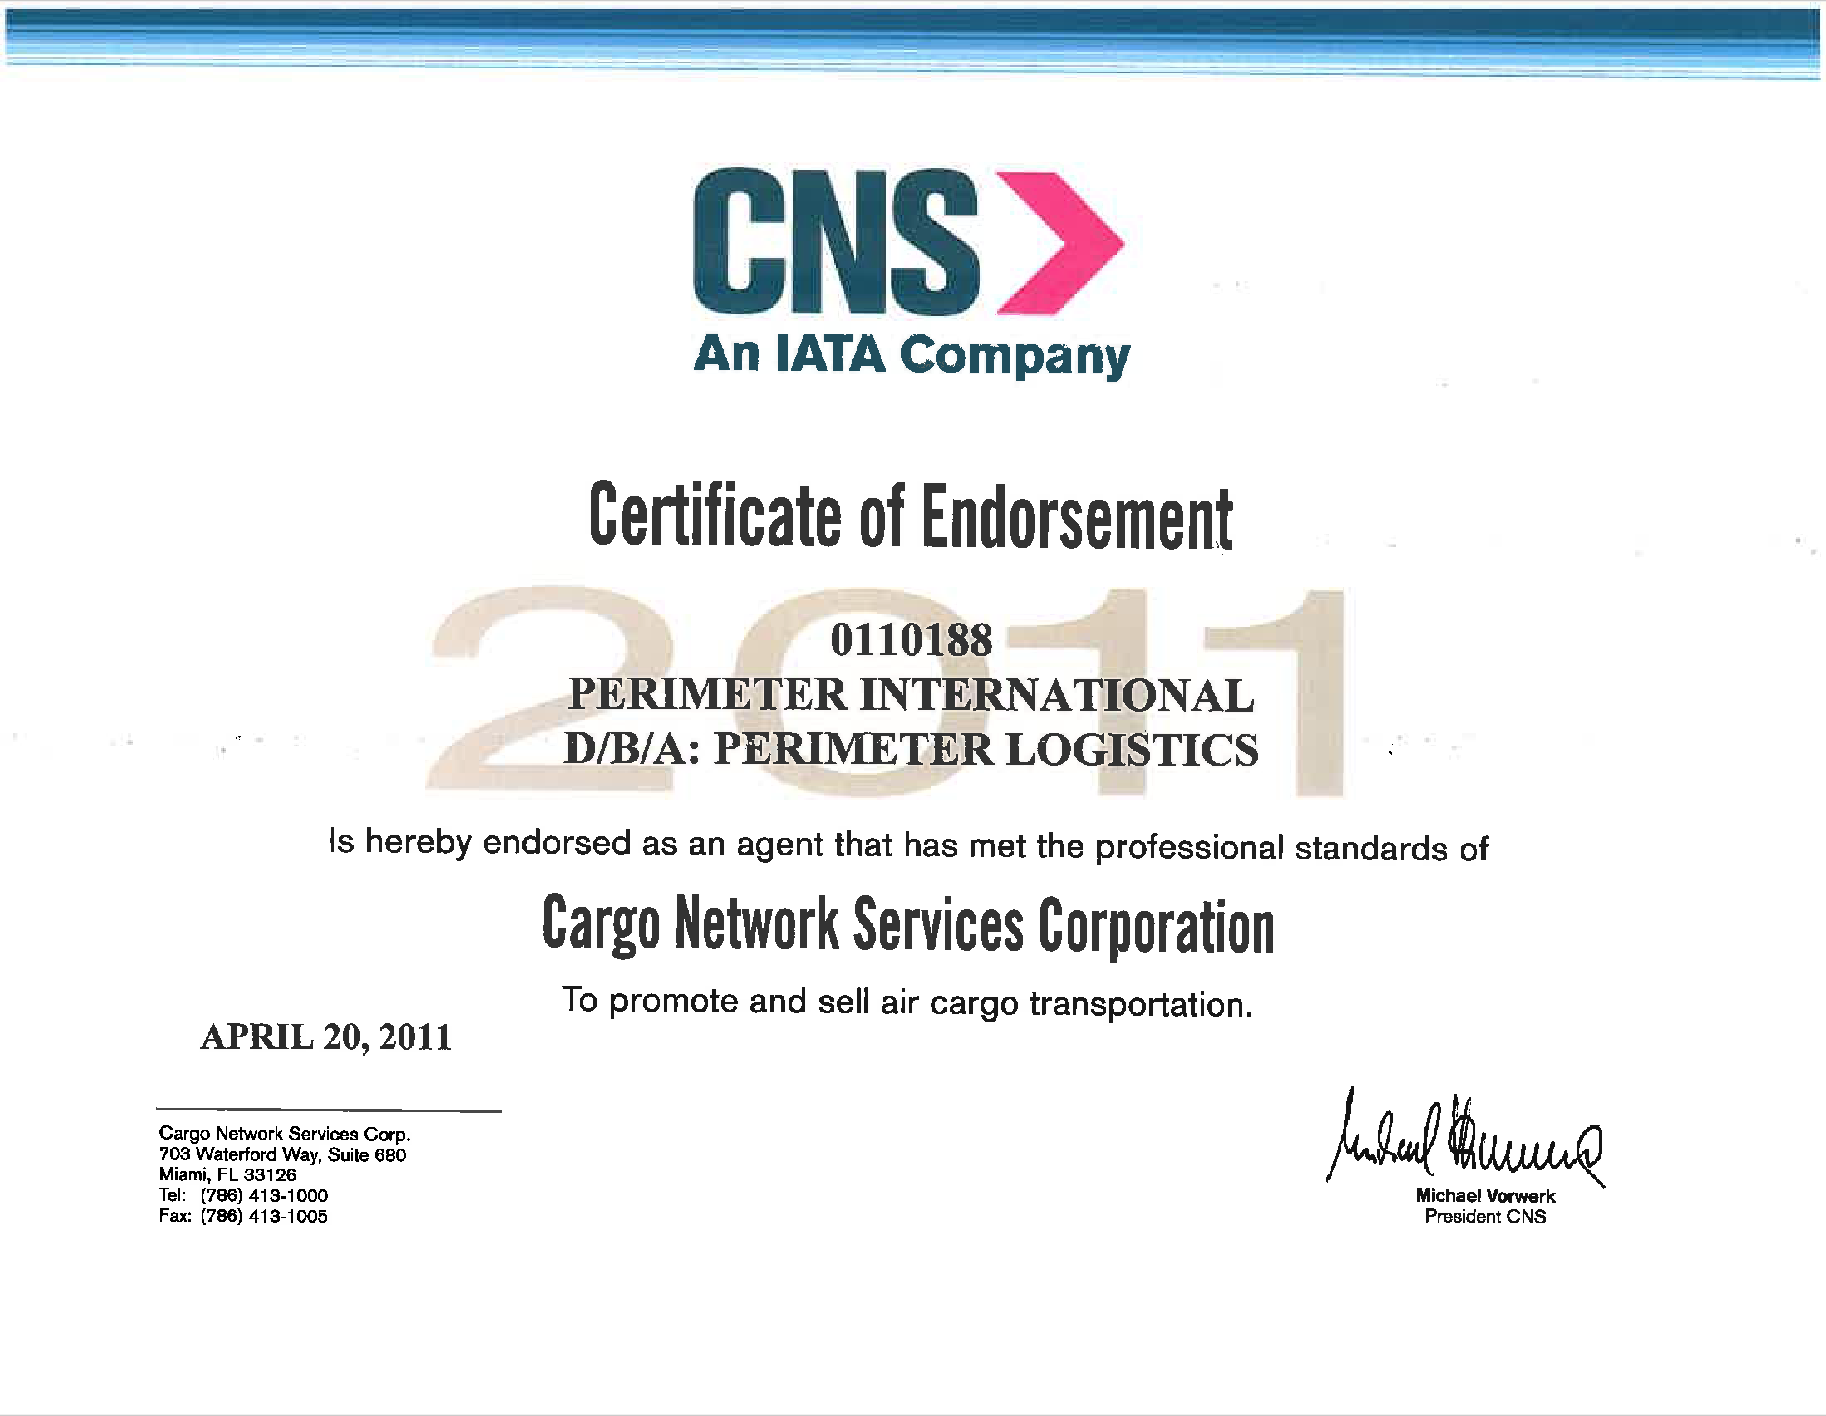 Government services pgl integrated logistics compliance with tsa dot us cbp fmc approved scac code pilk db 78 5323440 cage code 6g6t0 year business started 2006 xflitez Images